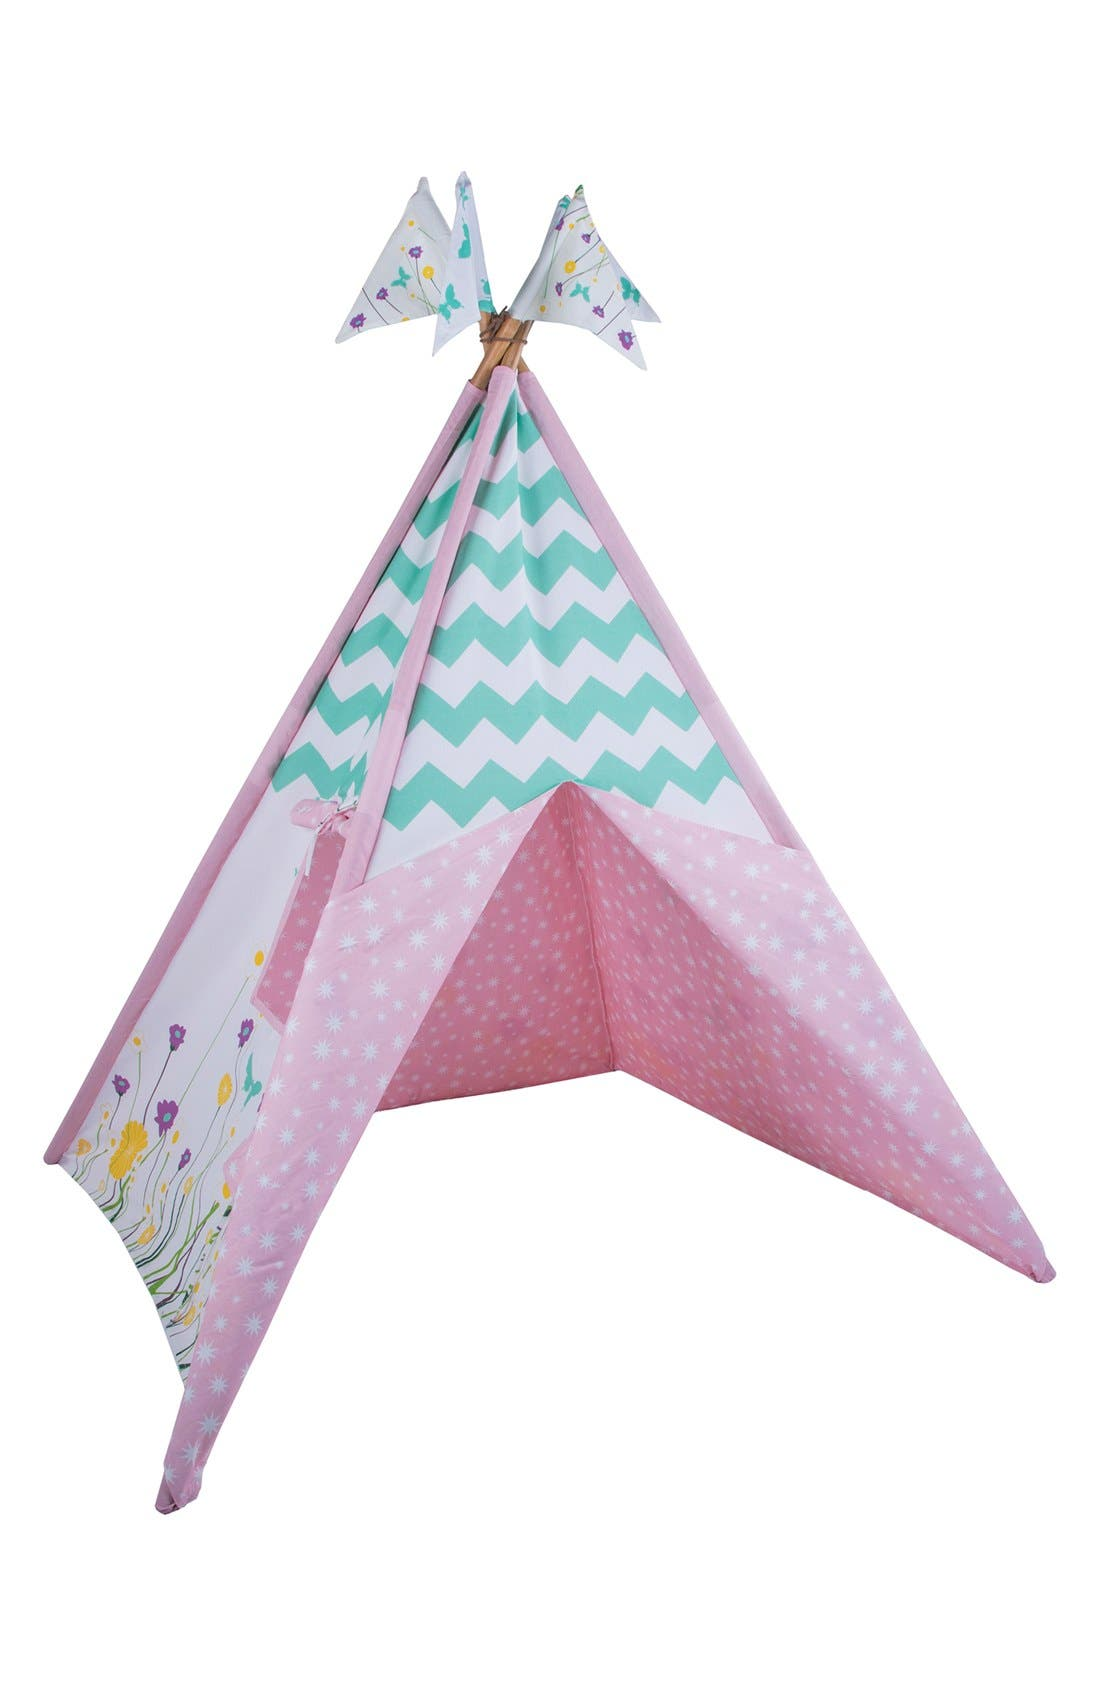 'Wildflowers' Cotton Canvas Teepee,                         Main,                         color, BEIGE